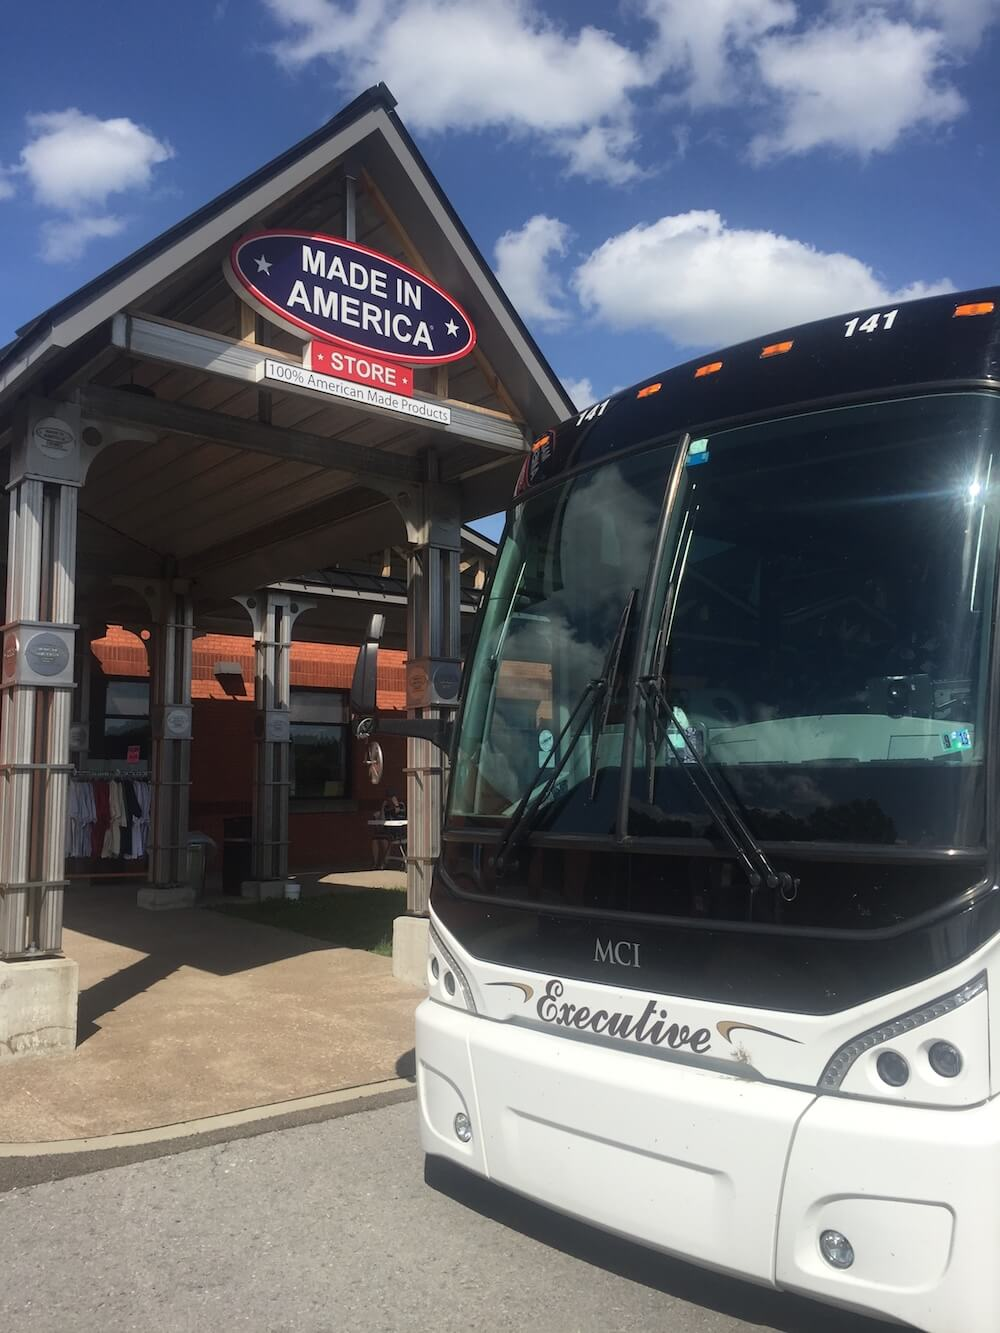 Motorcoach outside Made in America Store